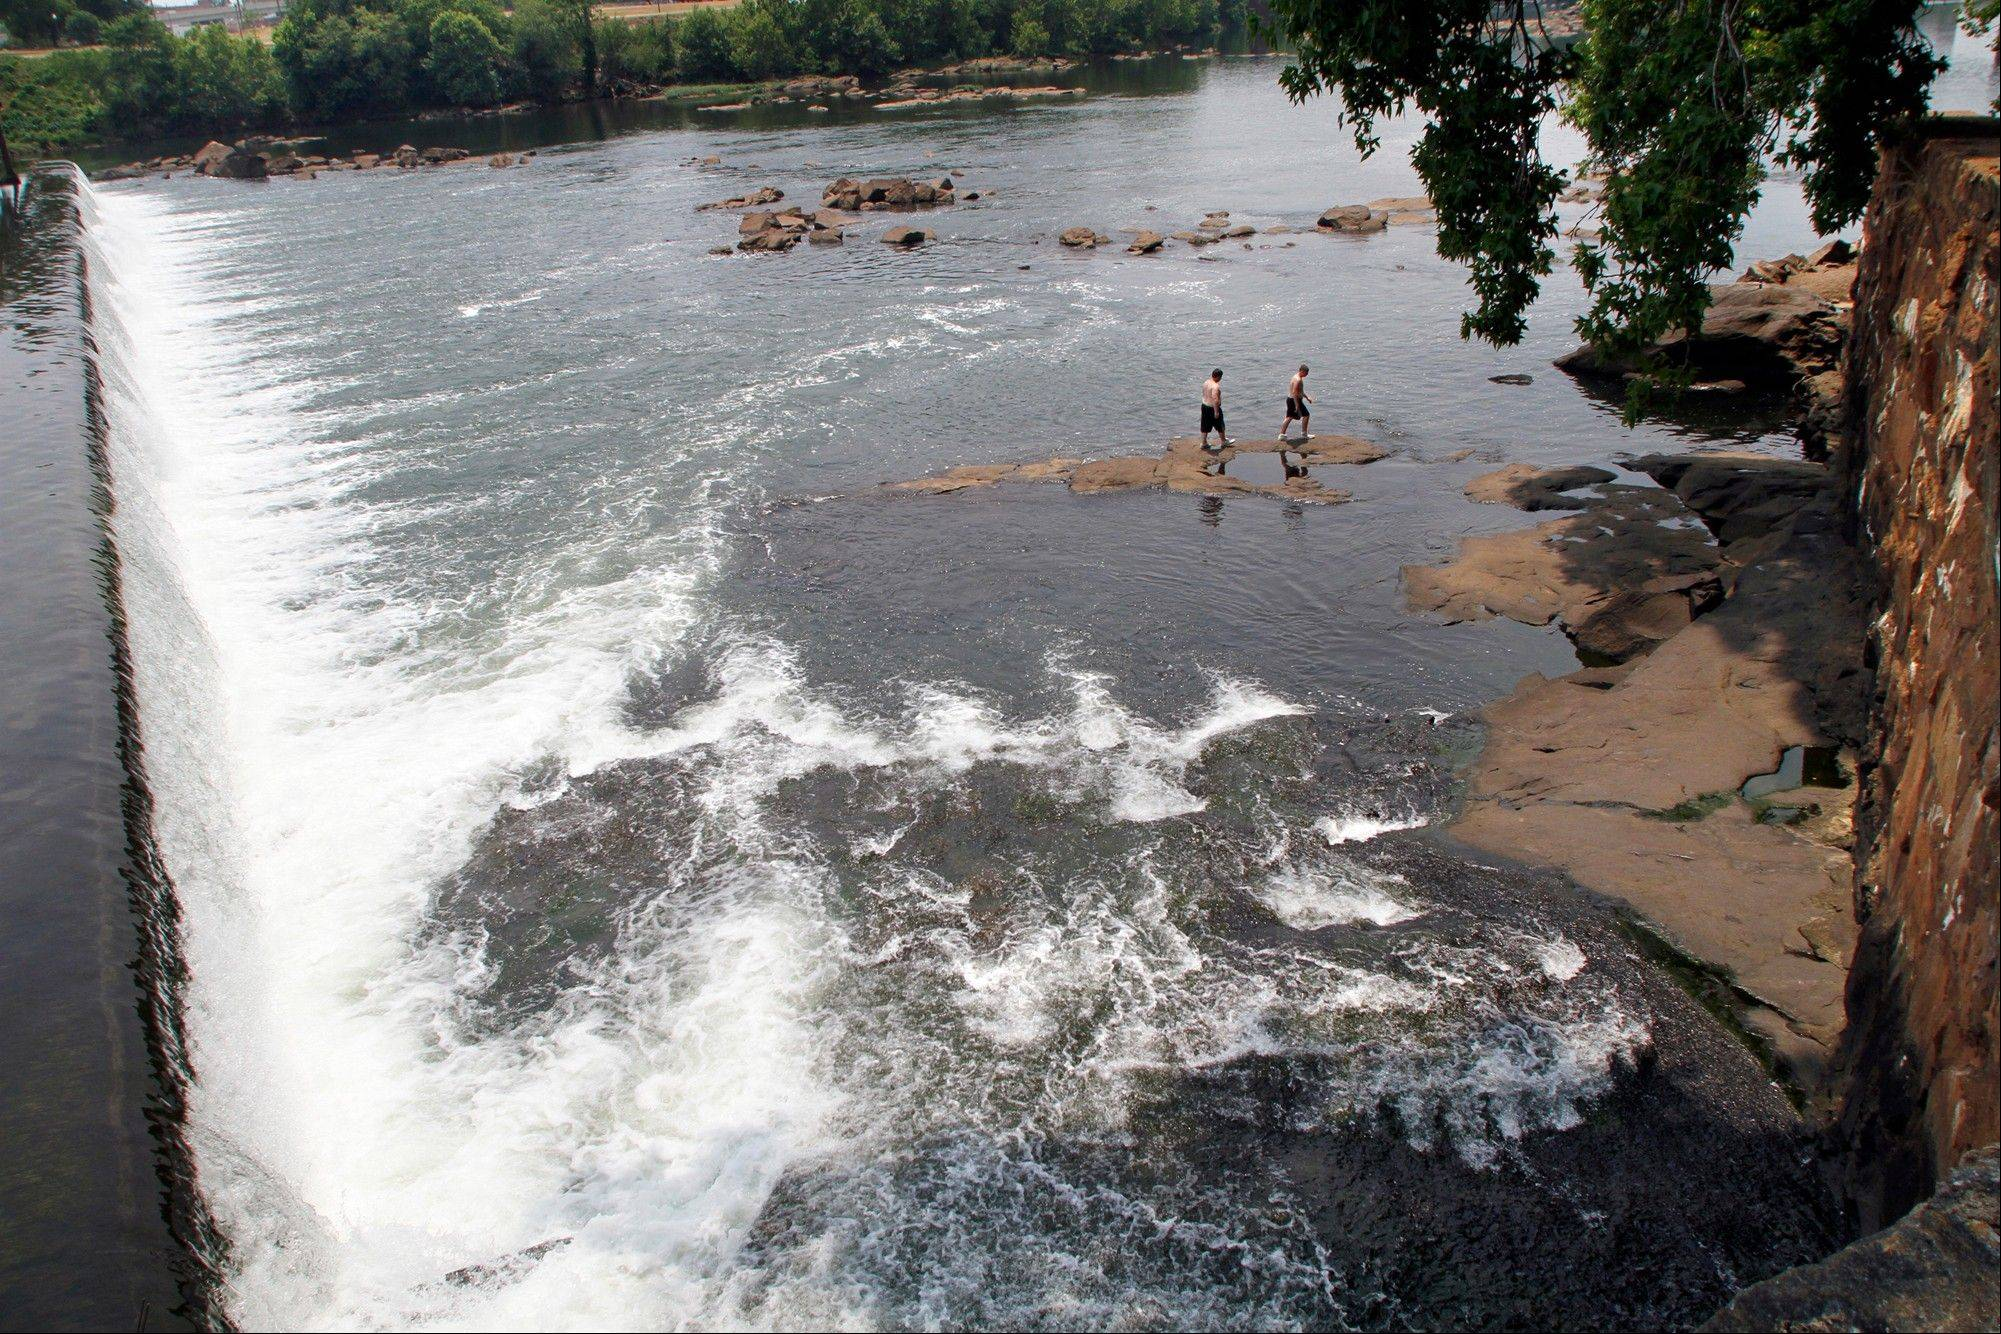 Men walk on the rocks in the Chattahoochee River below the City Mills dam near Columbus, Ga. Leaders of a national land trust say a river that runs through metro Atlanta holds the key to realizing a grand vision for outdoor enthusiasts.